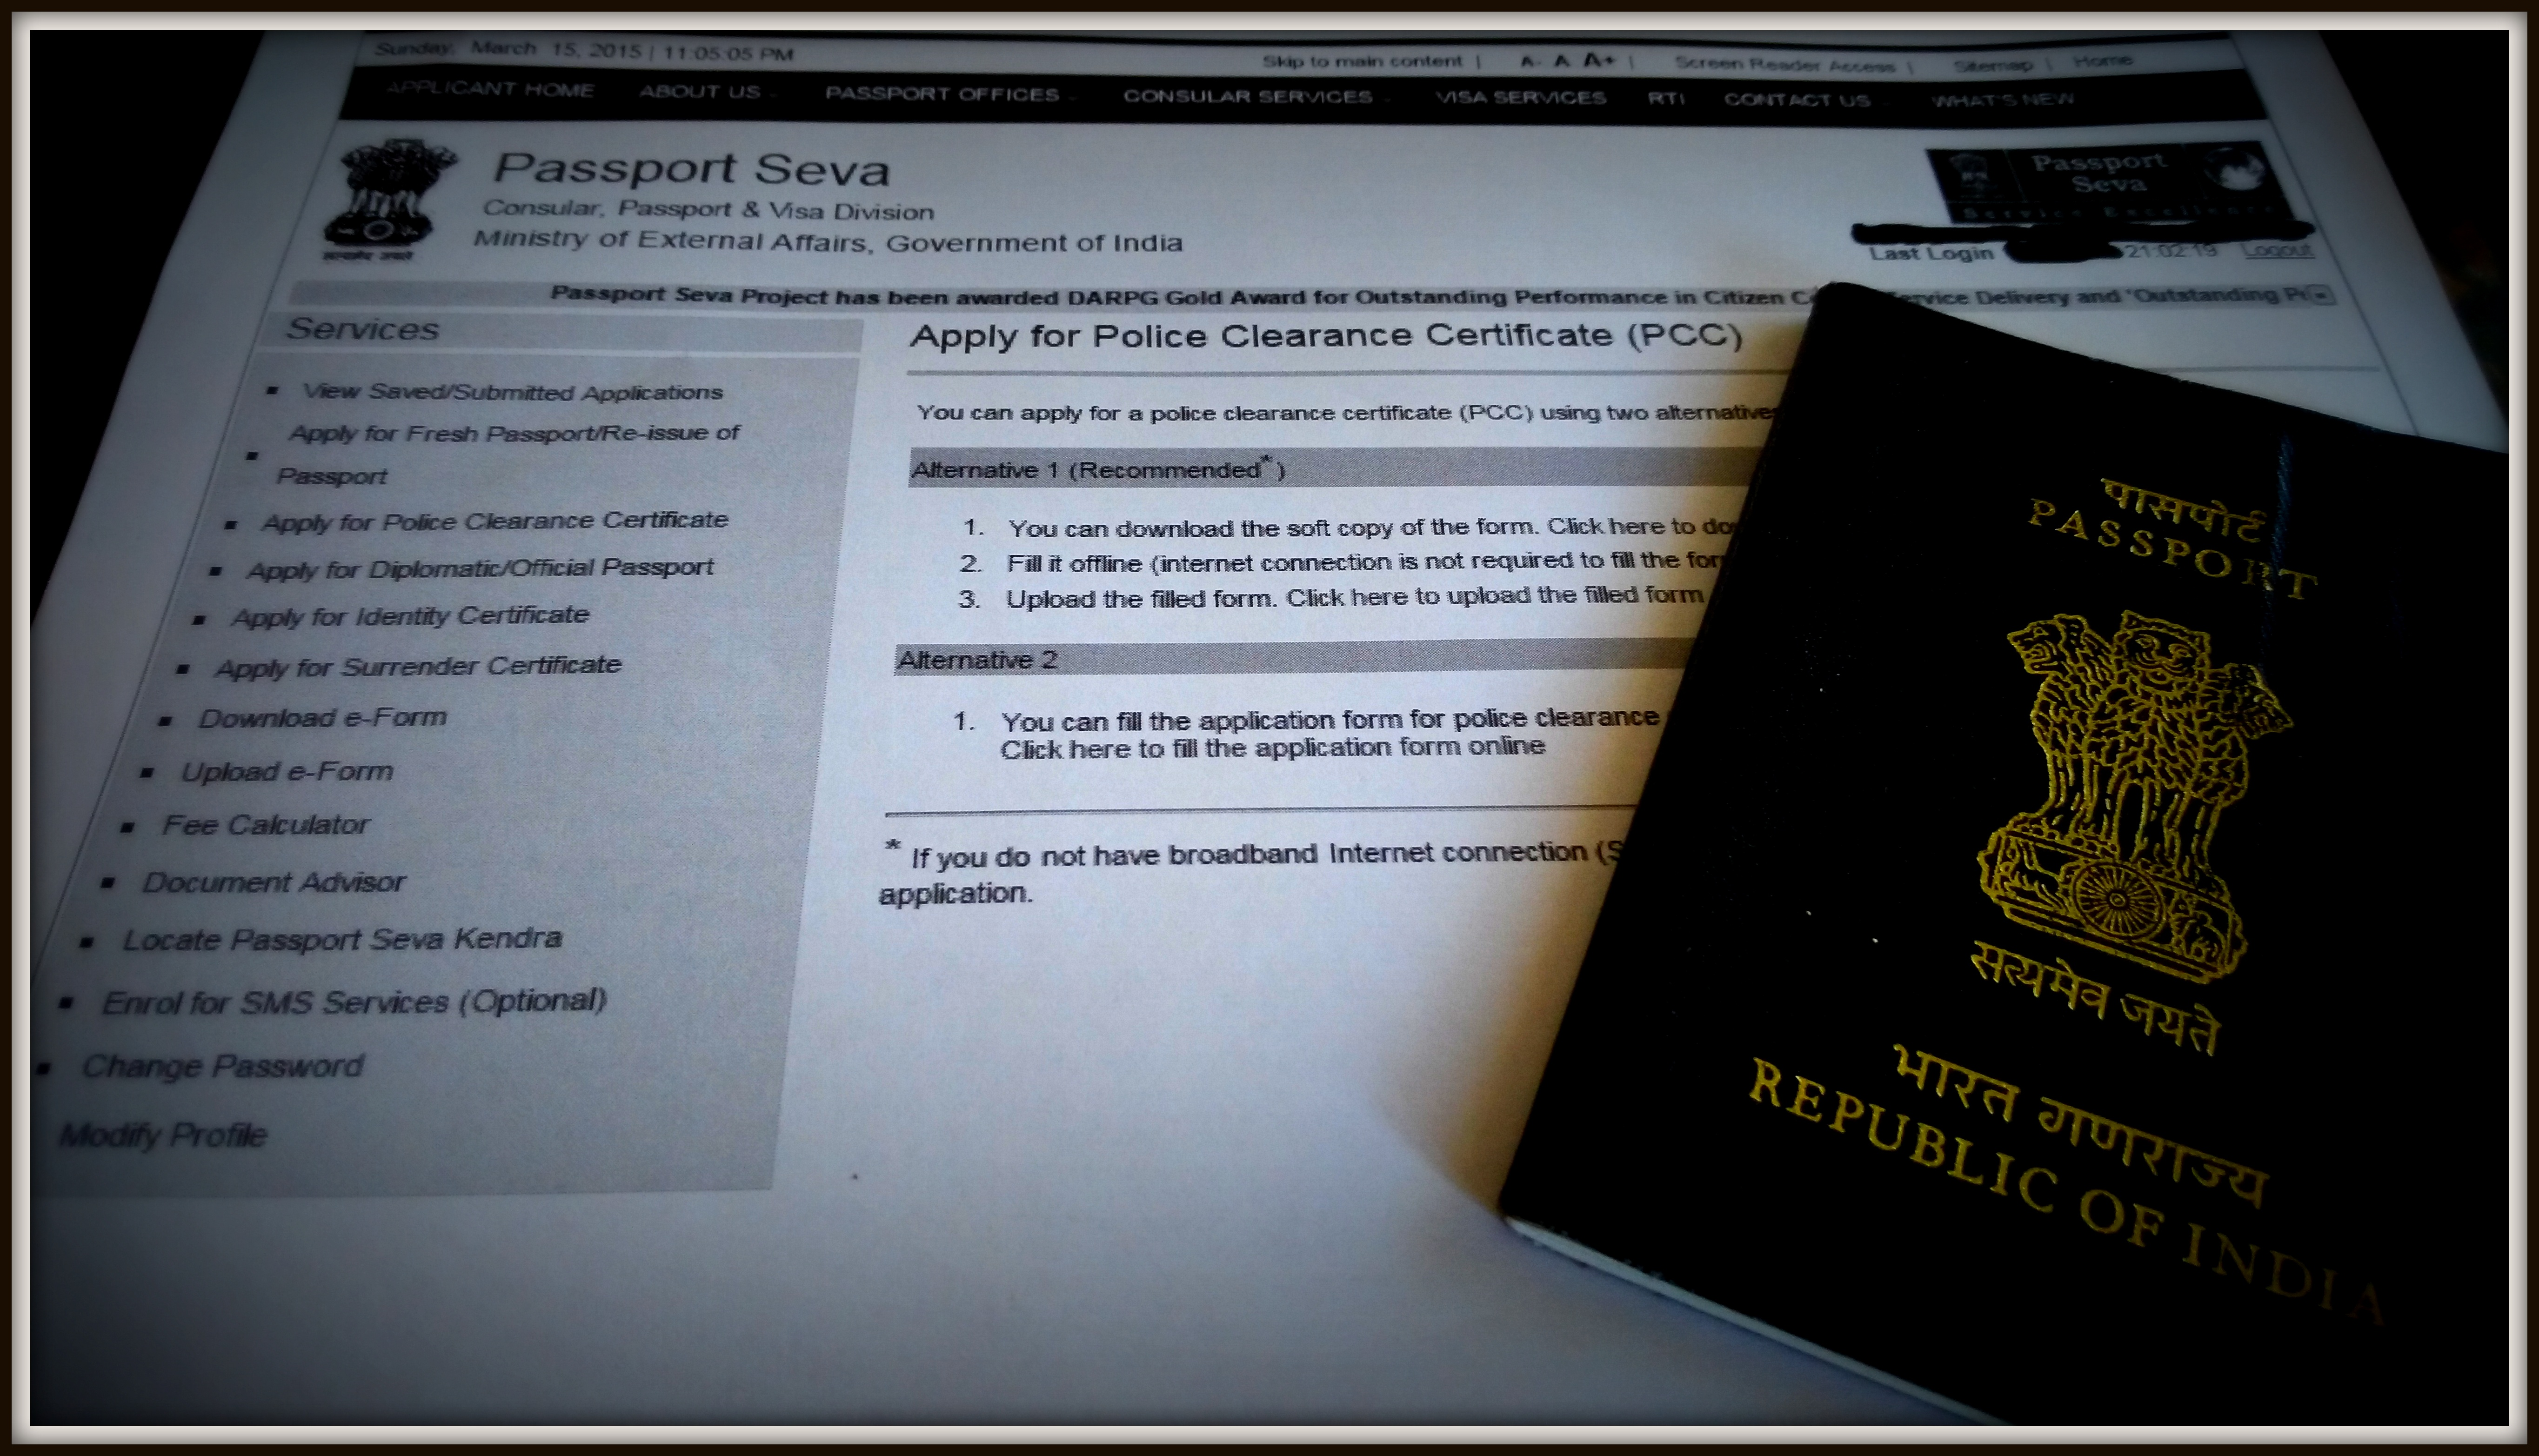 Passport Seva Services For Police Clearance Certificate What A